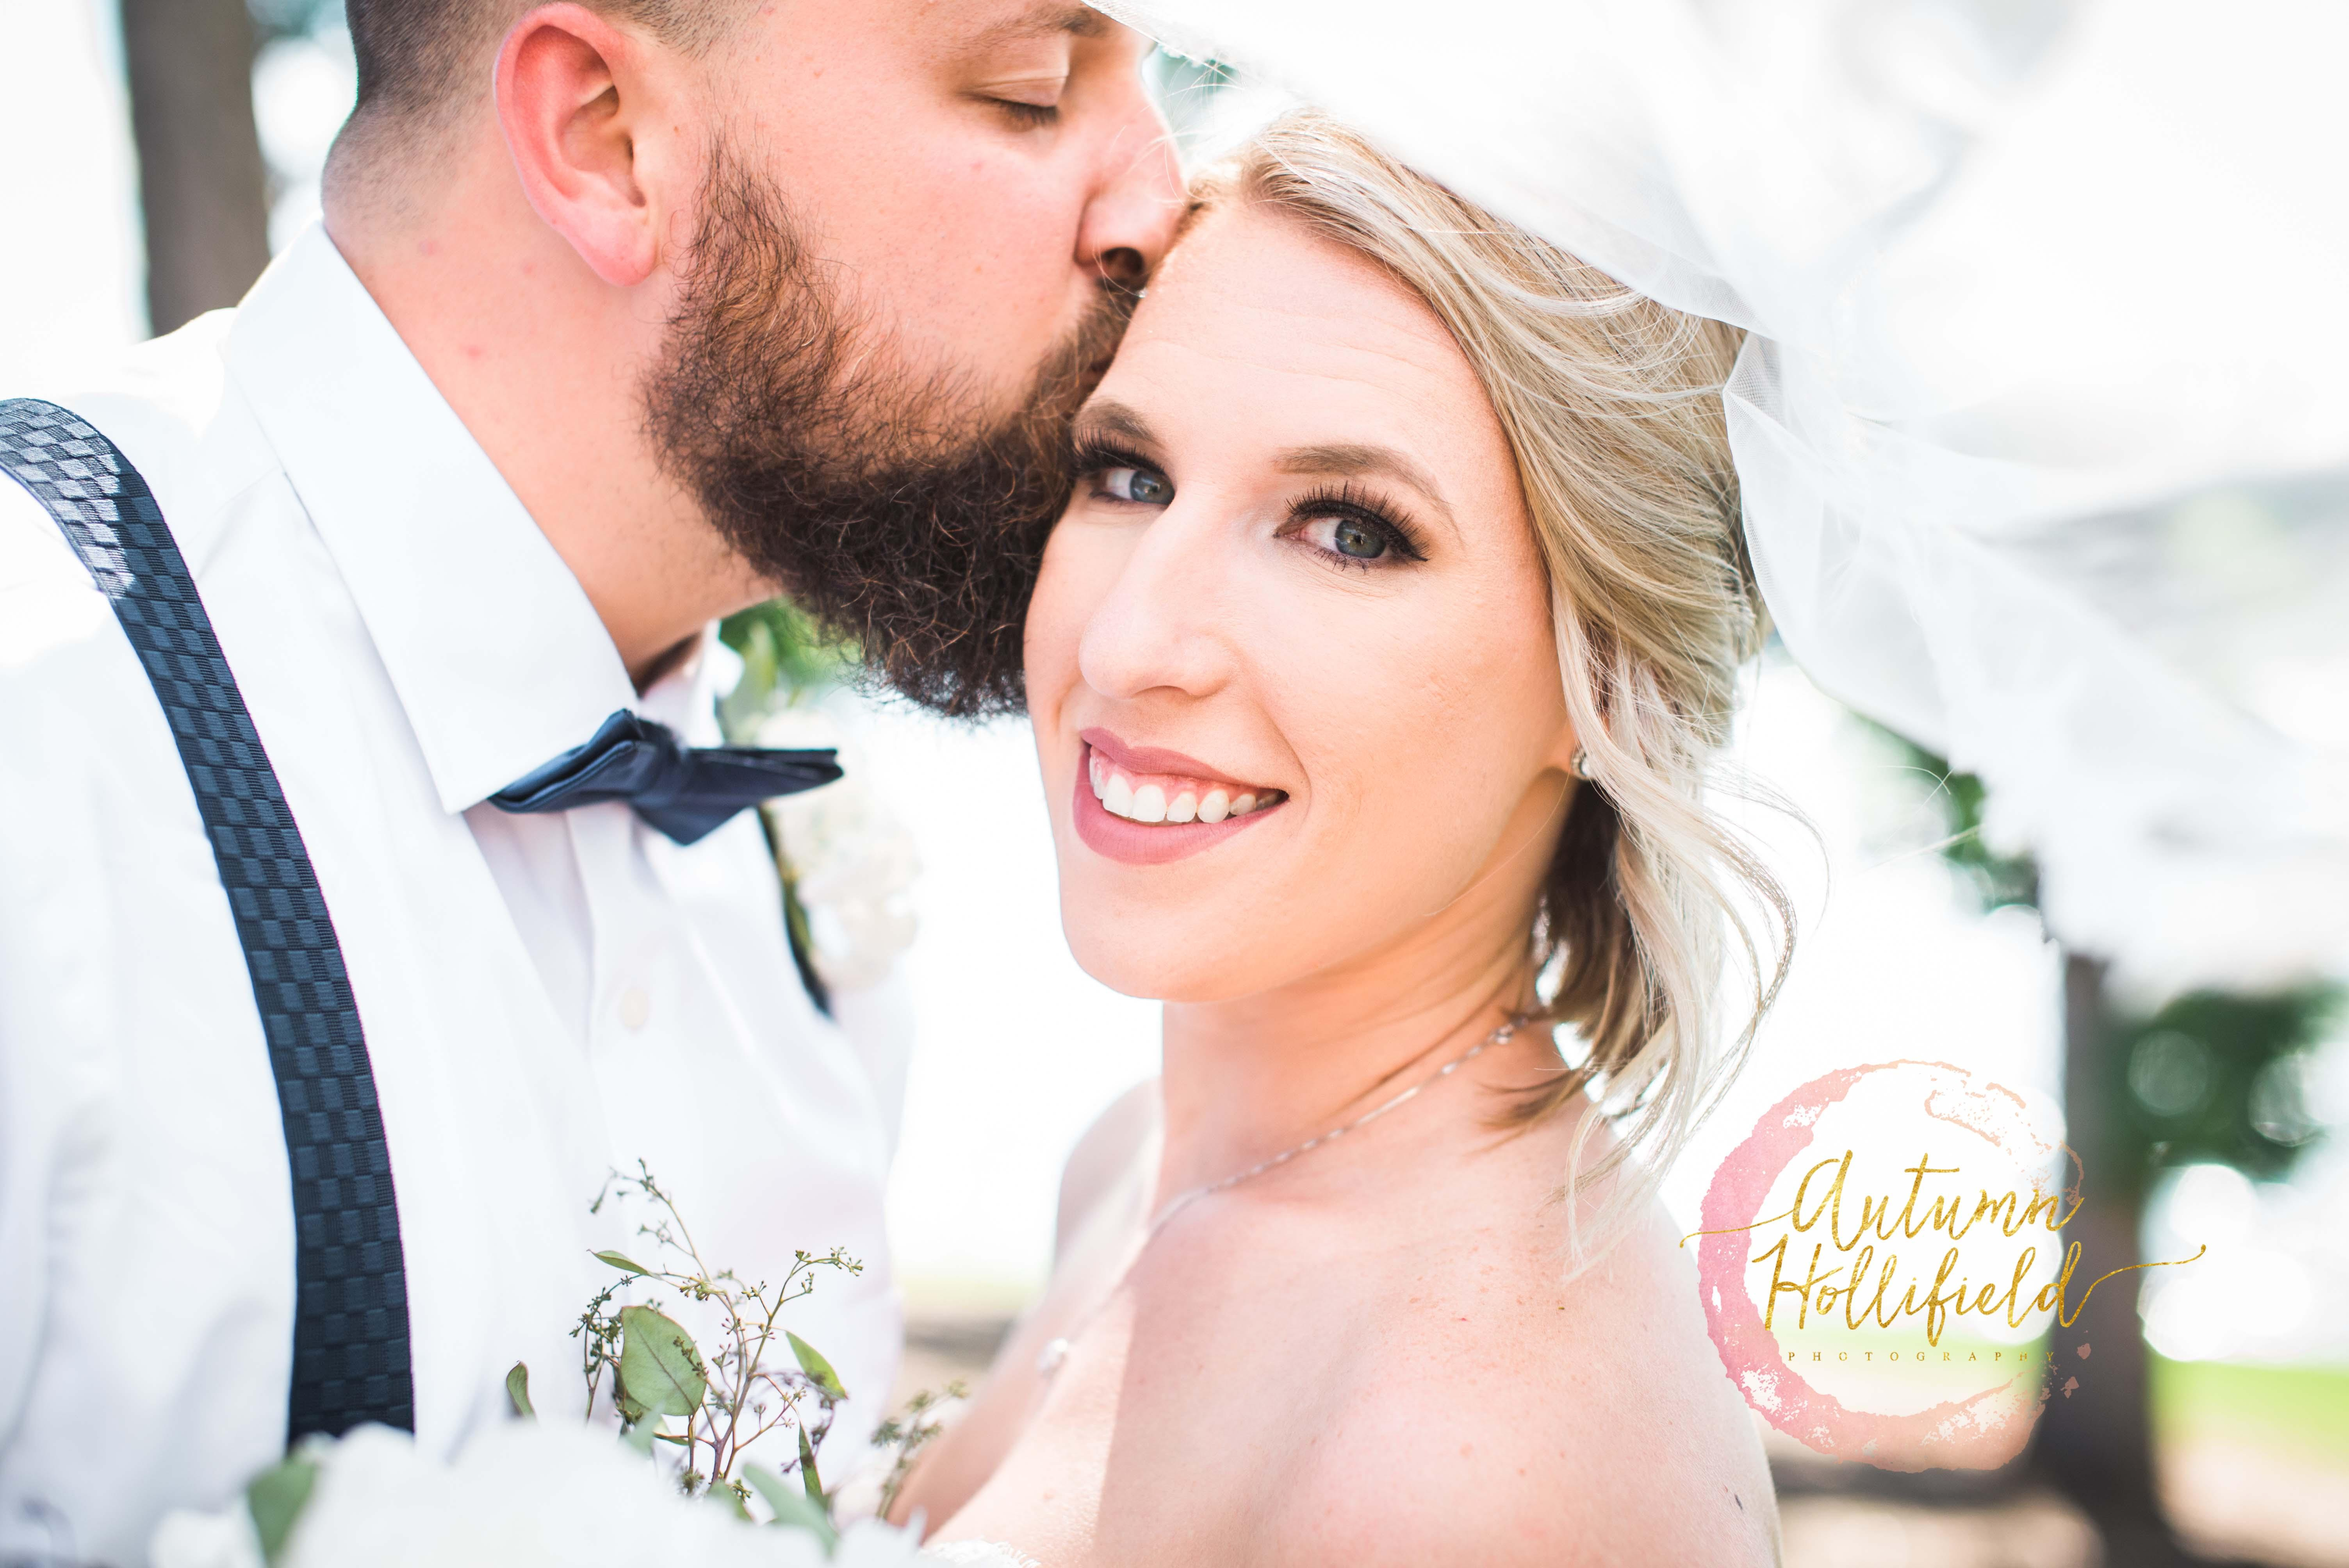 This Vet And His Bride Got Their Dream Wedding When A Cancelled Was Auctioned Off